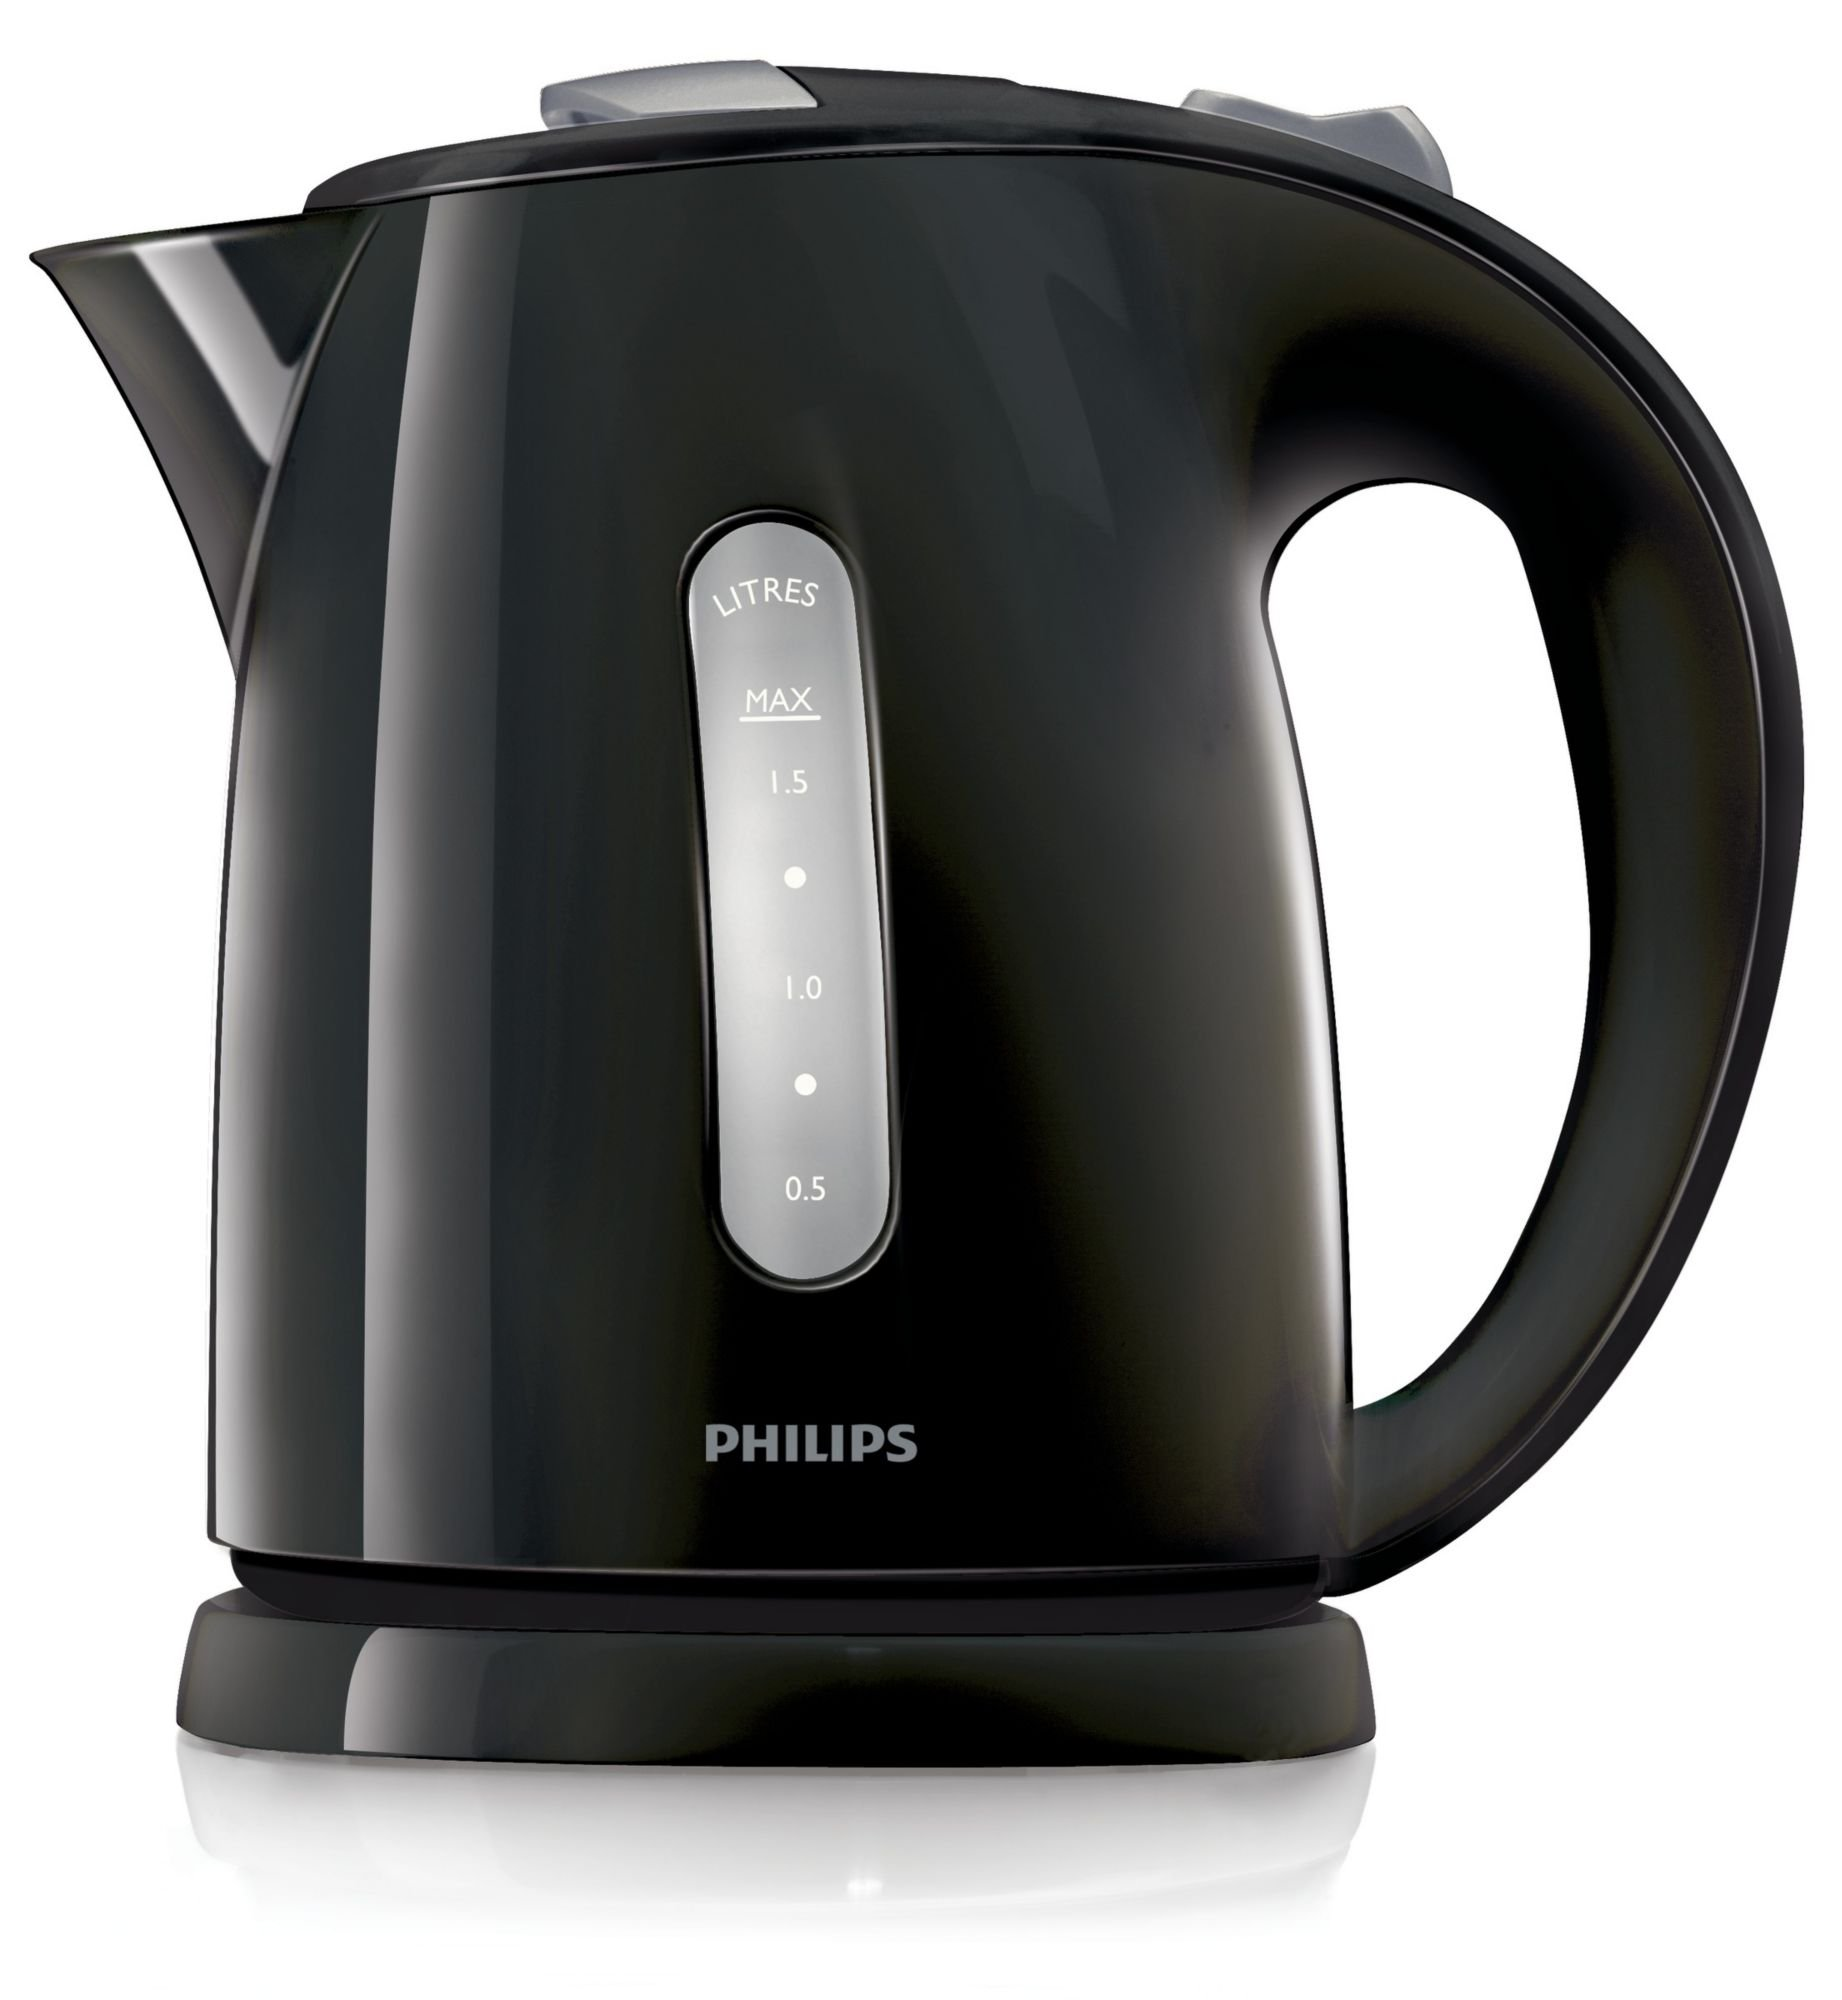 philips hd464620 serie wasserkocher 1 5 liter 2400 watt. Black Bedroom Furniture Sets. Home Design Ideas